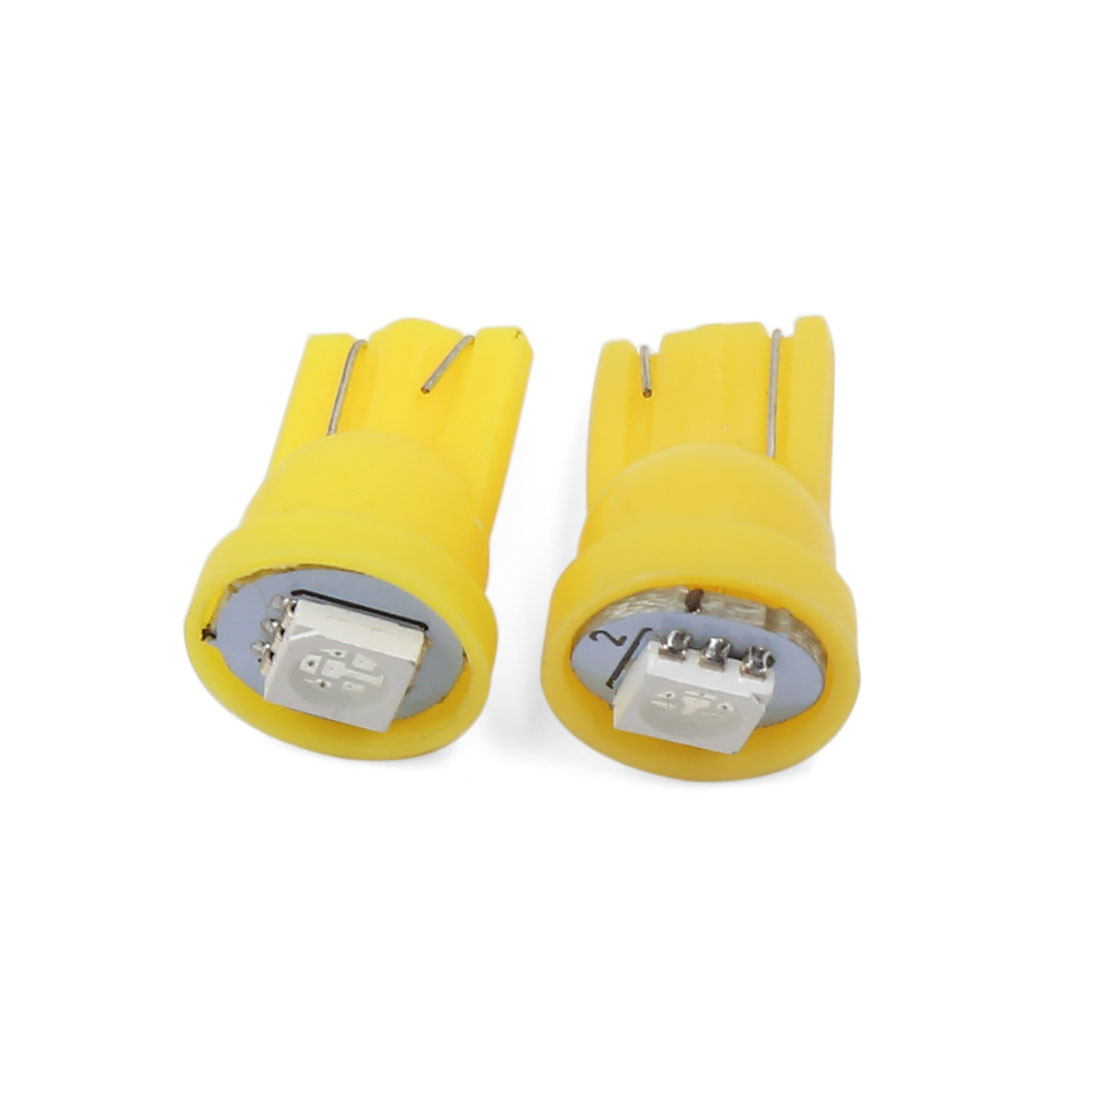 2 Pcs Yellow T10 Wedge 1-SMD 5050 LED Light Bulbs W5W 2825 158 192 168 Interior